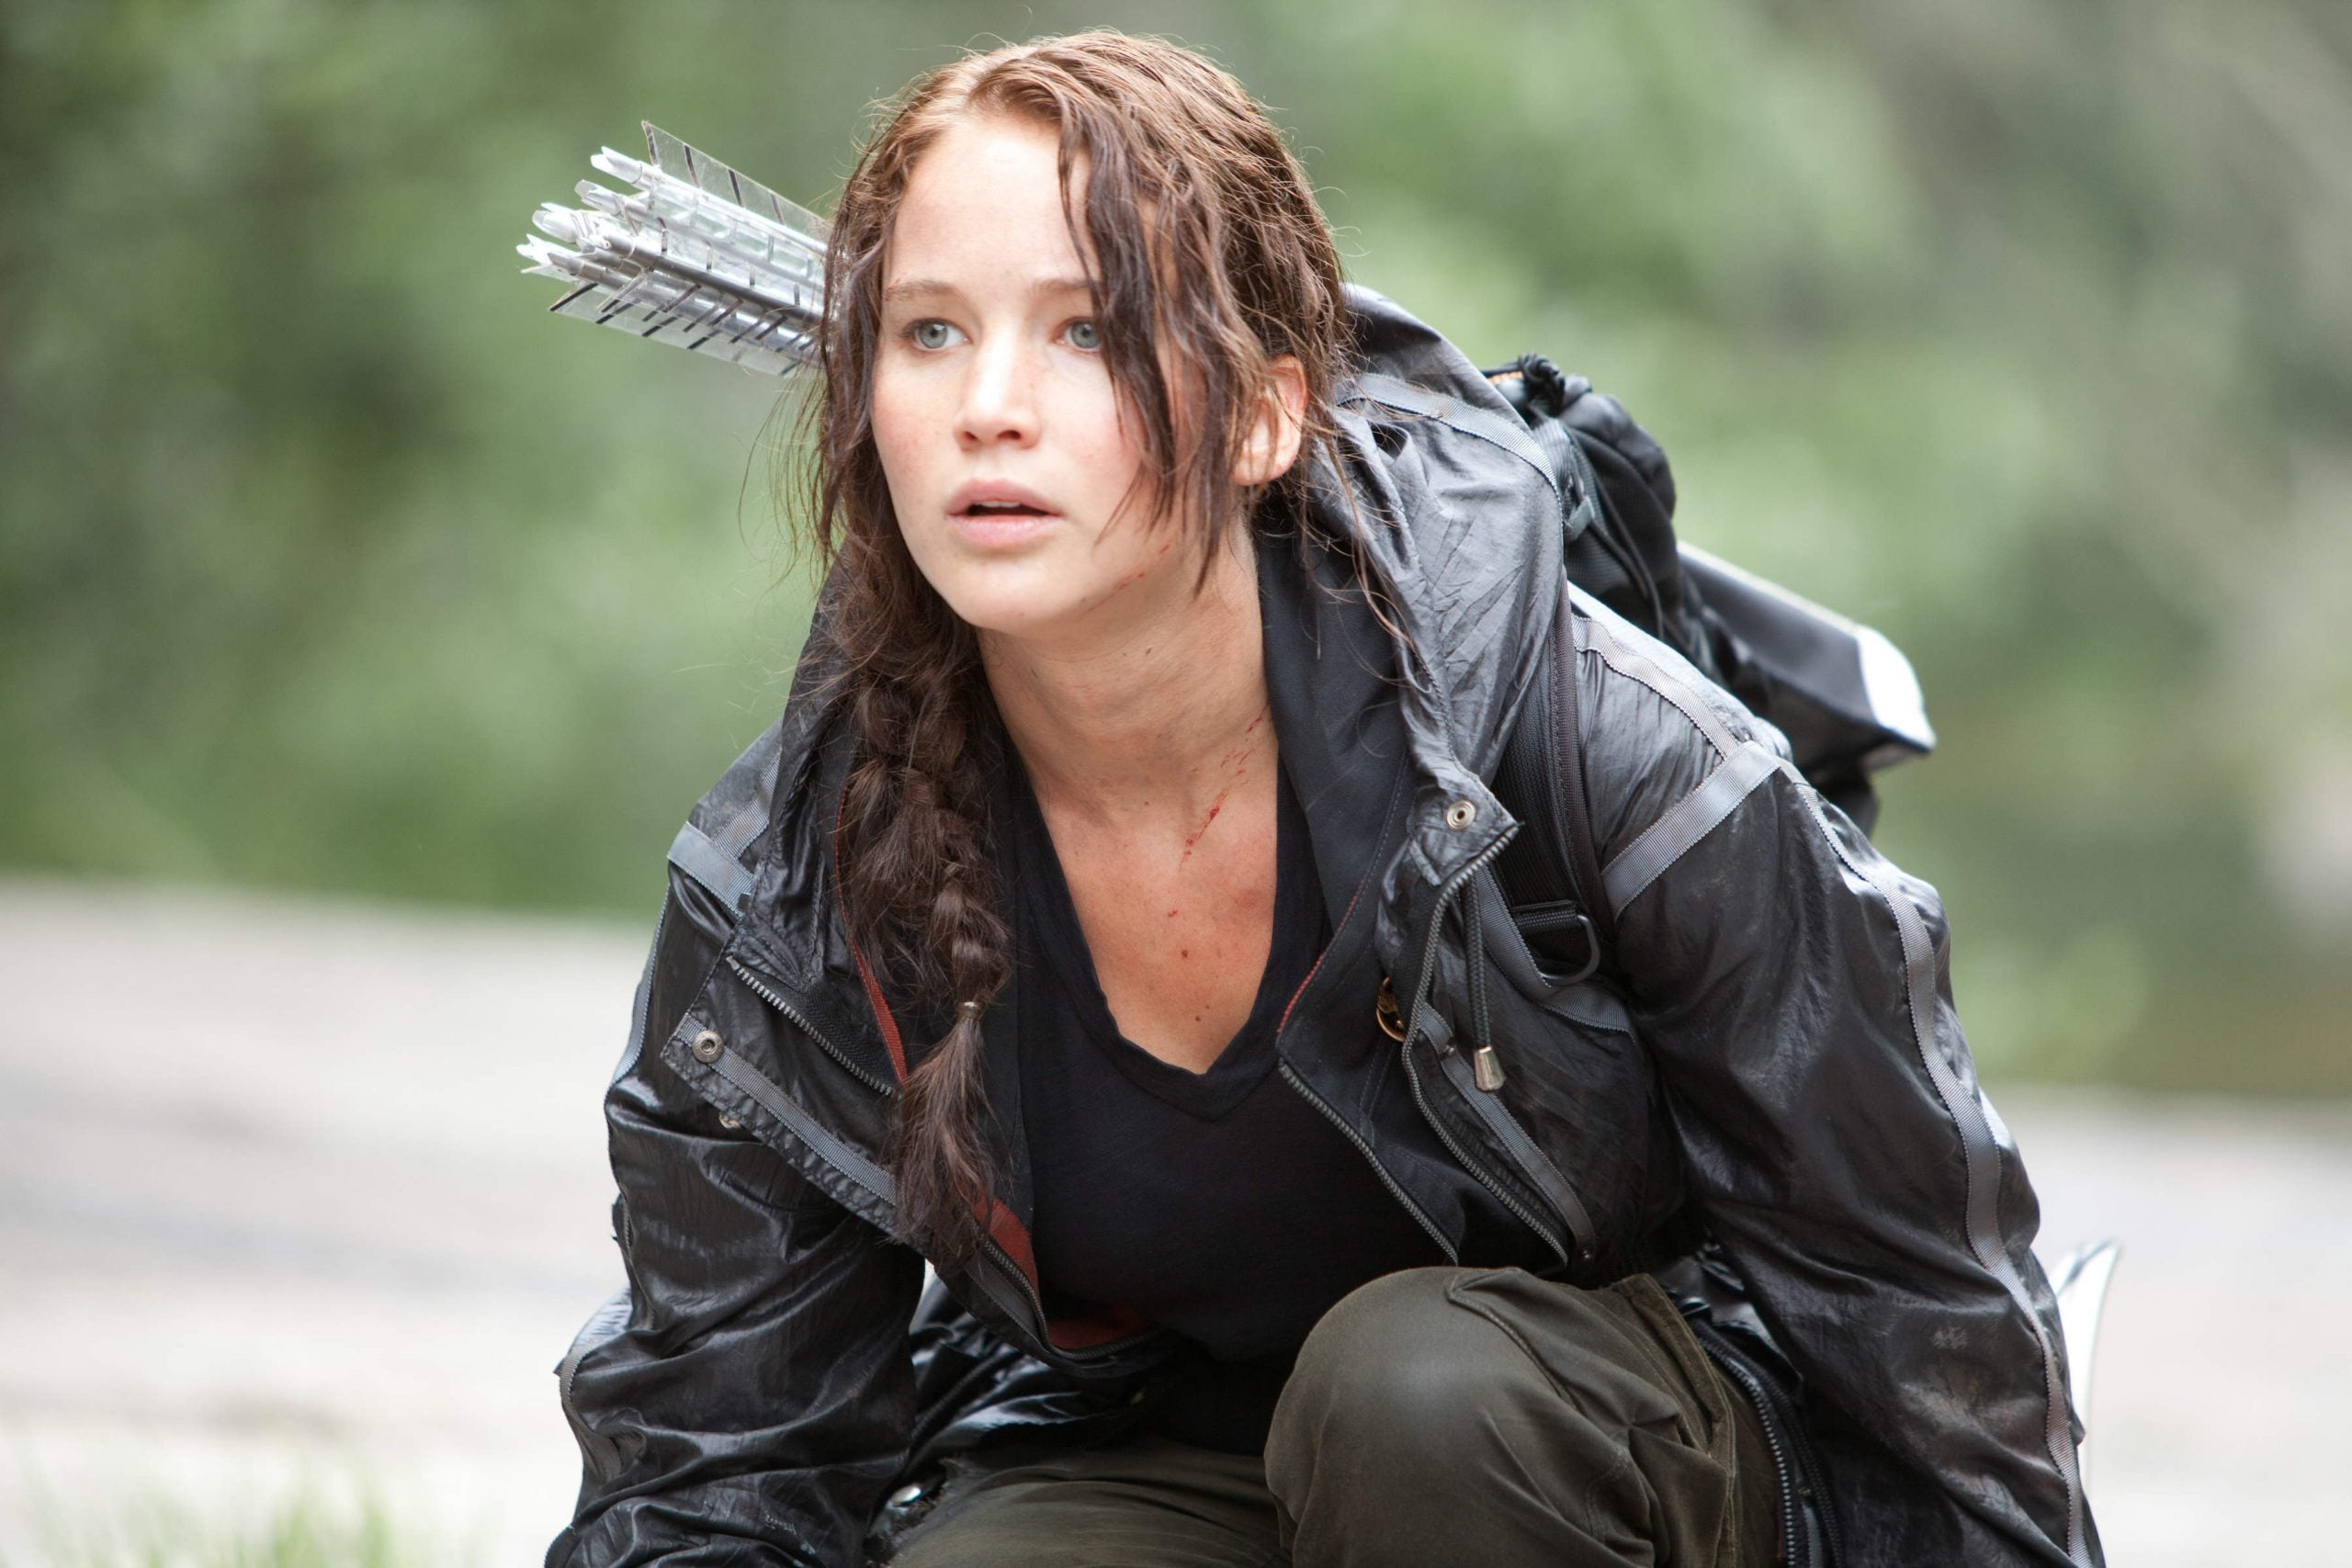 Why I want more unlikeable female characters